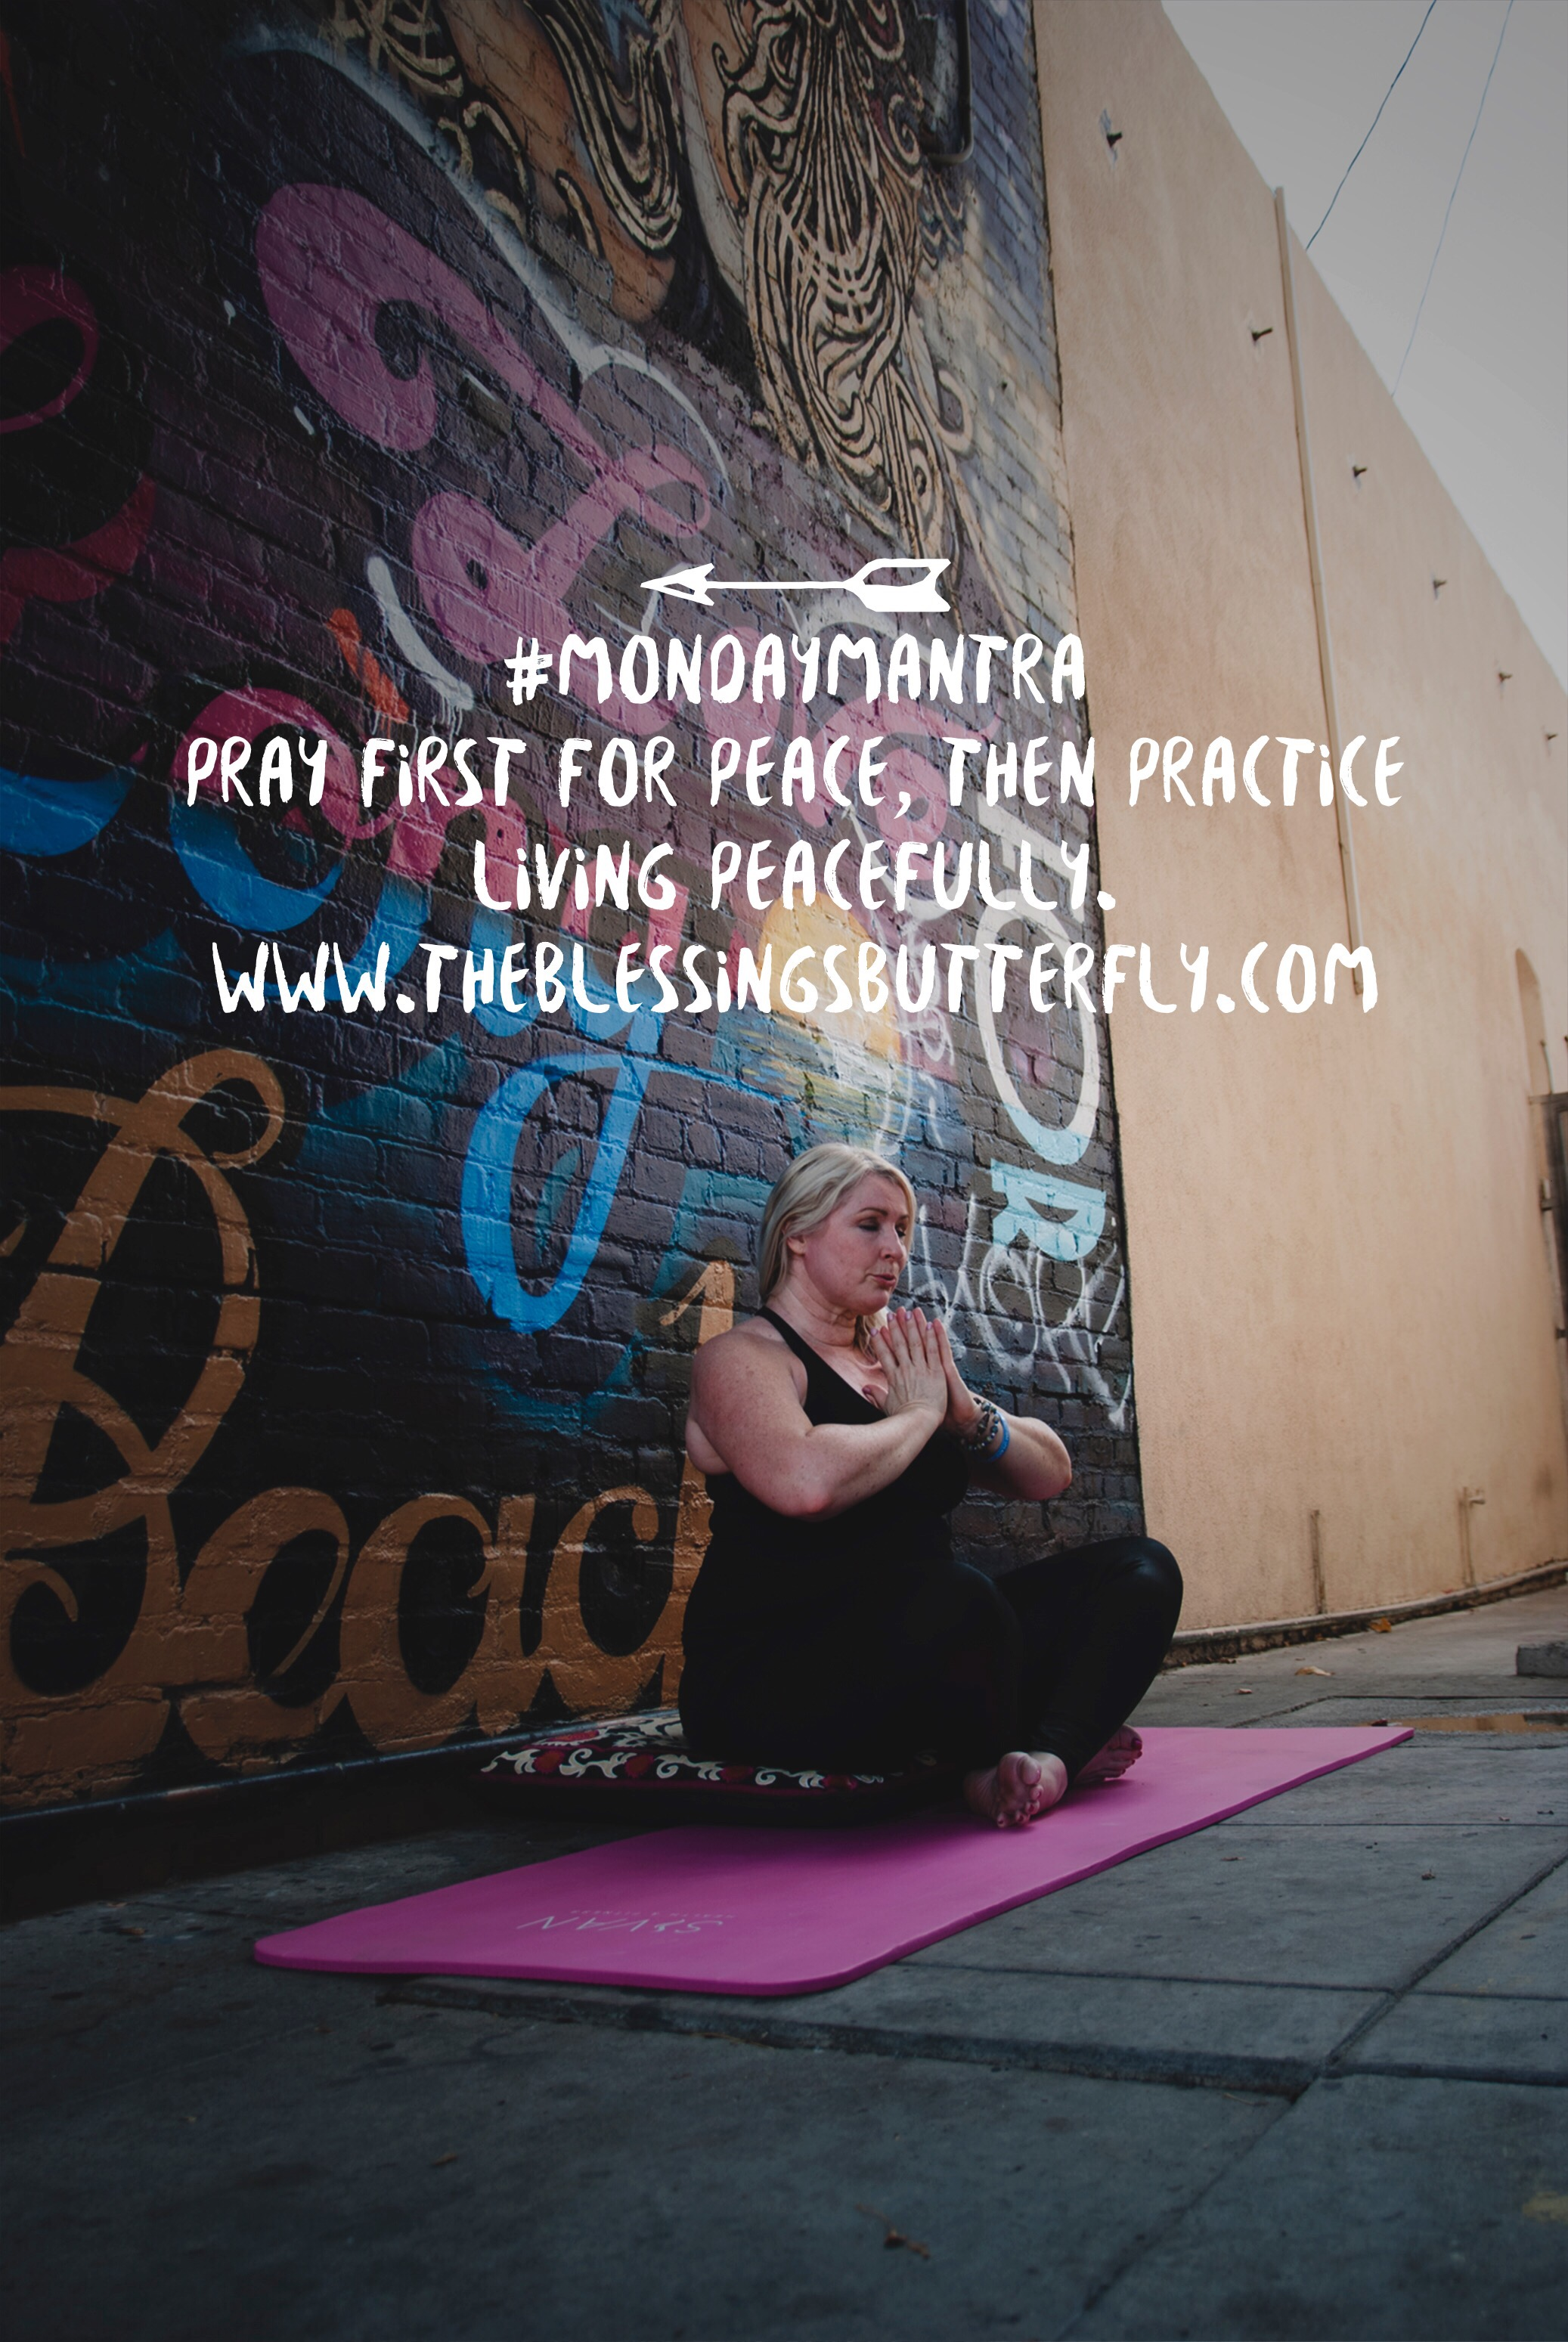 Pray for Peace, then practice living peacefully.